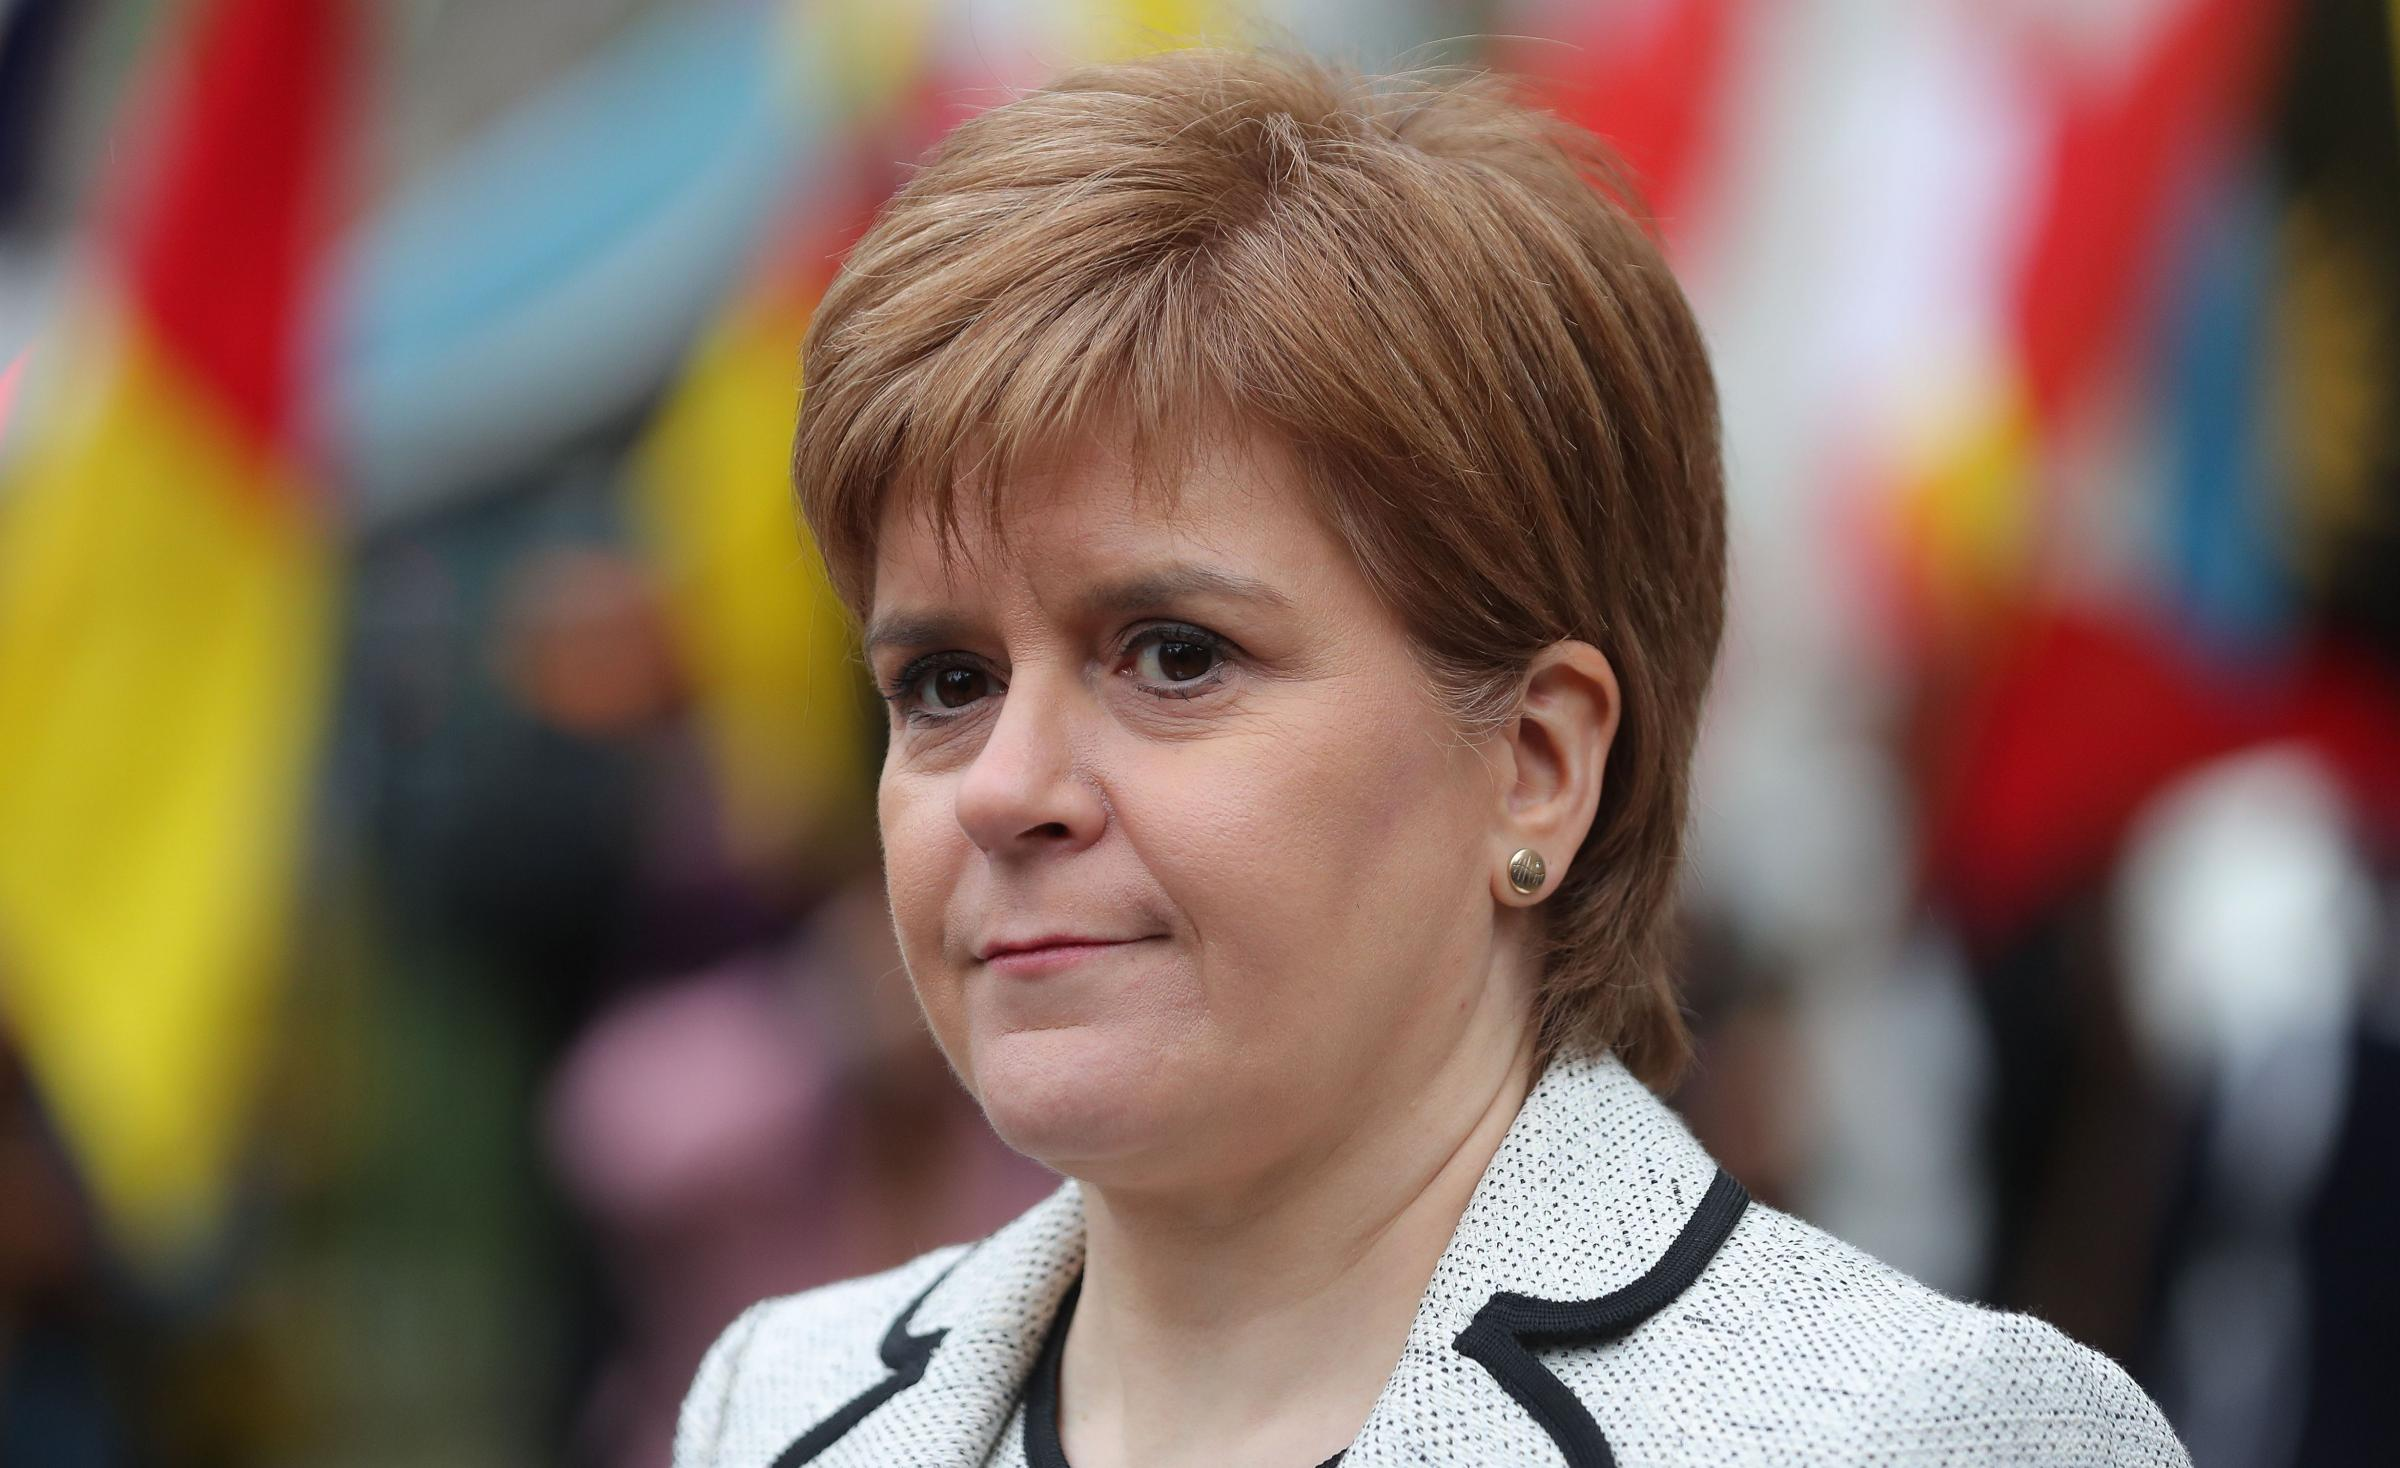 Nicola Sturgeon has this week faced calls to back a second referendum on EU membership